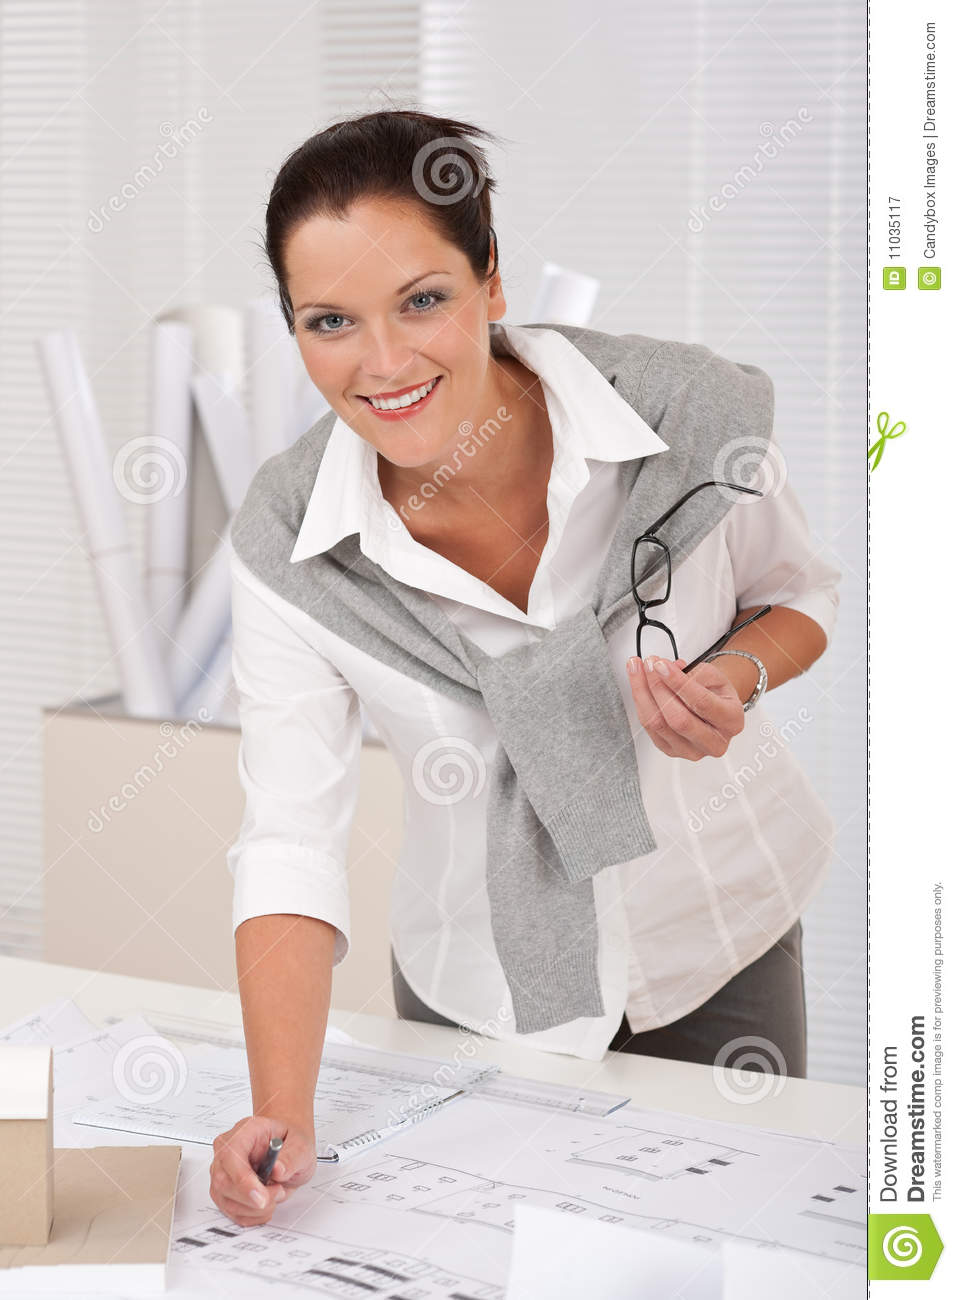 Successful architect business woman work at office royalty for Architect at work